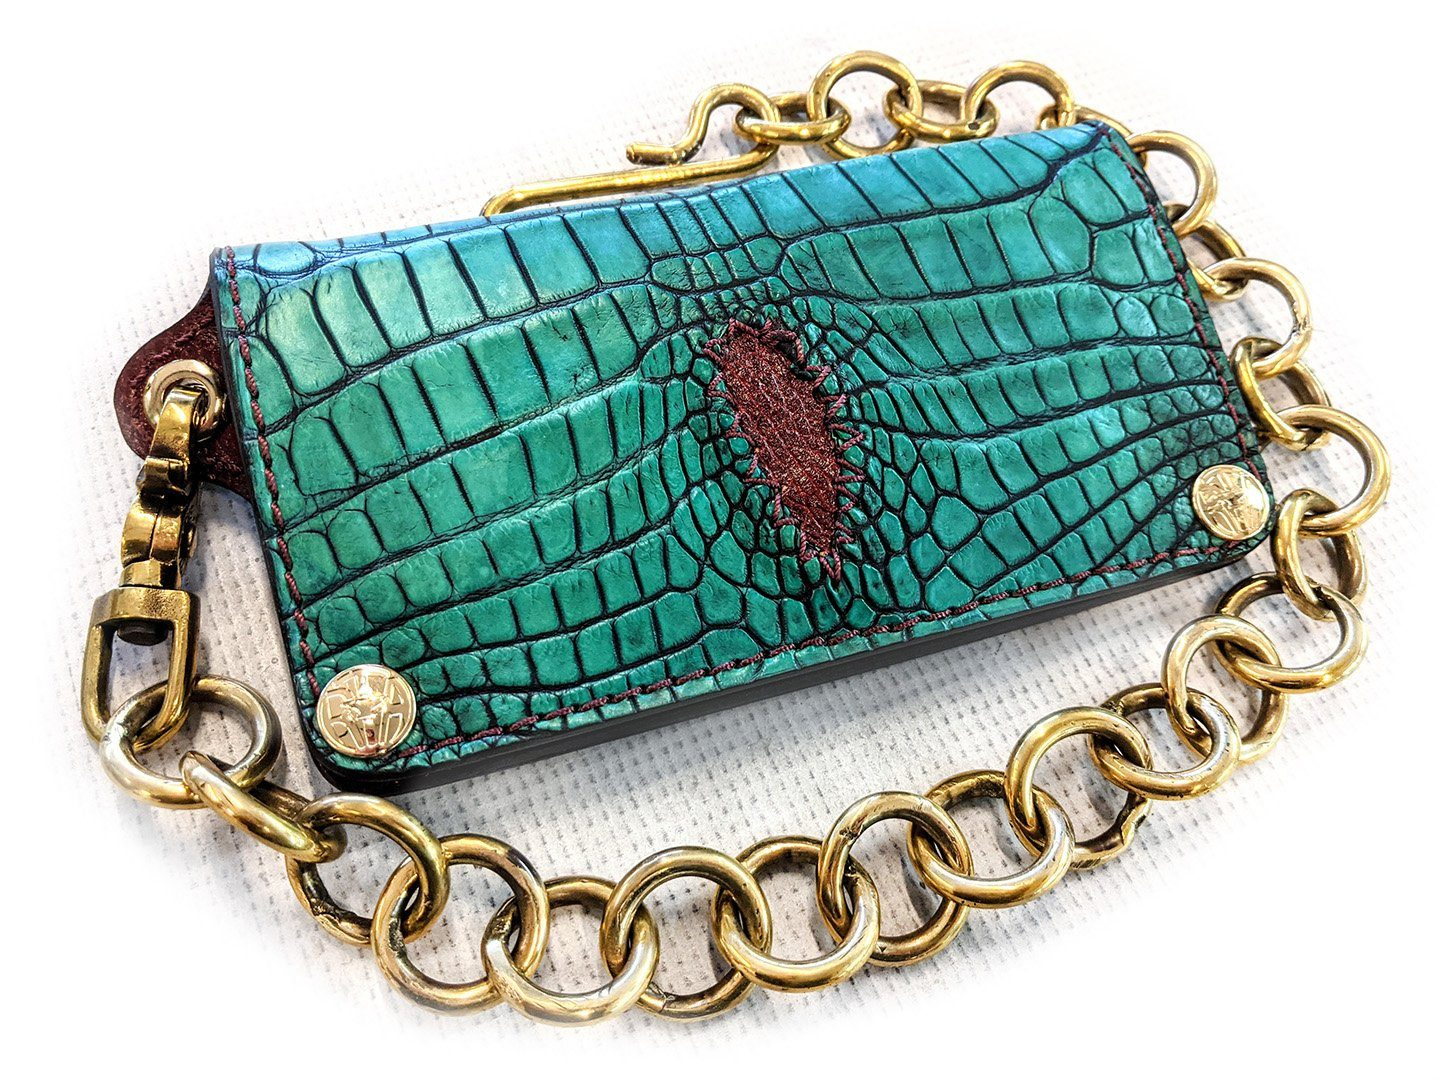 Long Biker Chain Wallet - Antique Kelly Green with Burgundy Inlay